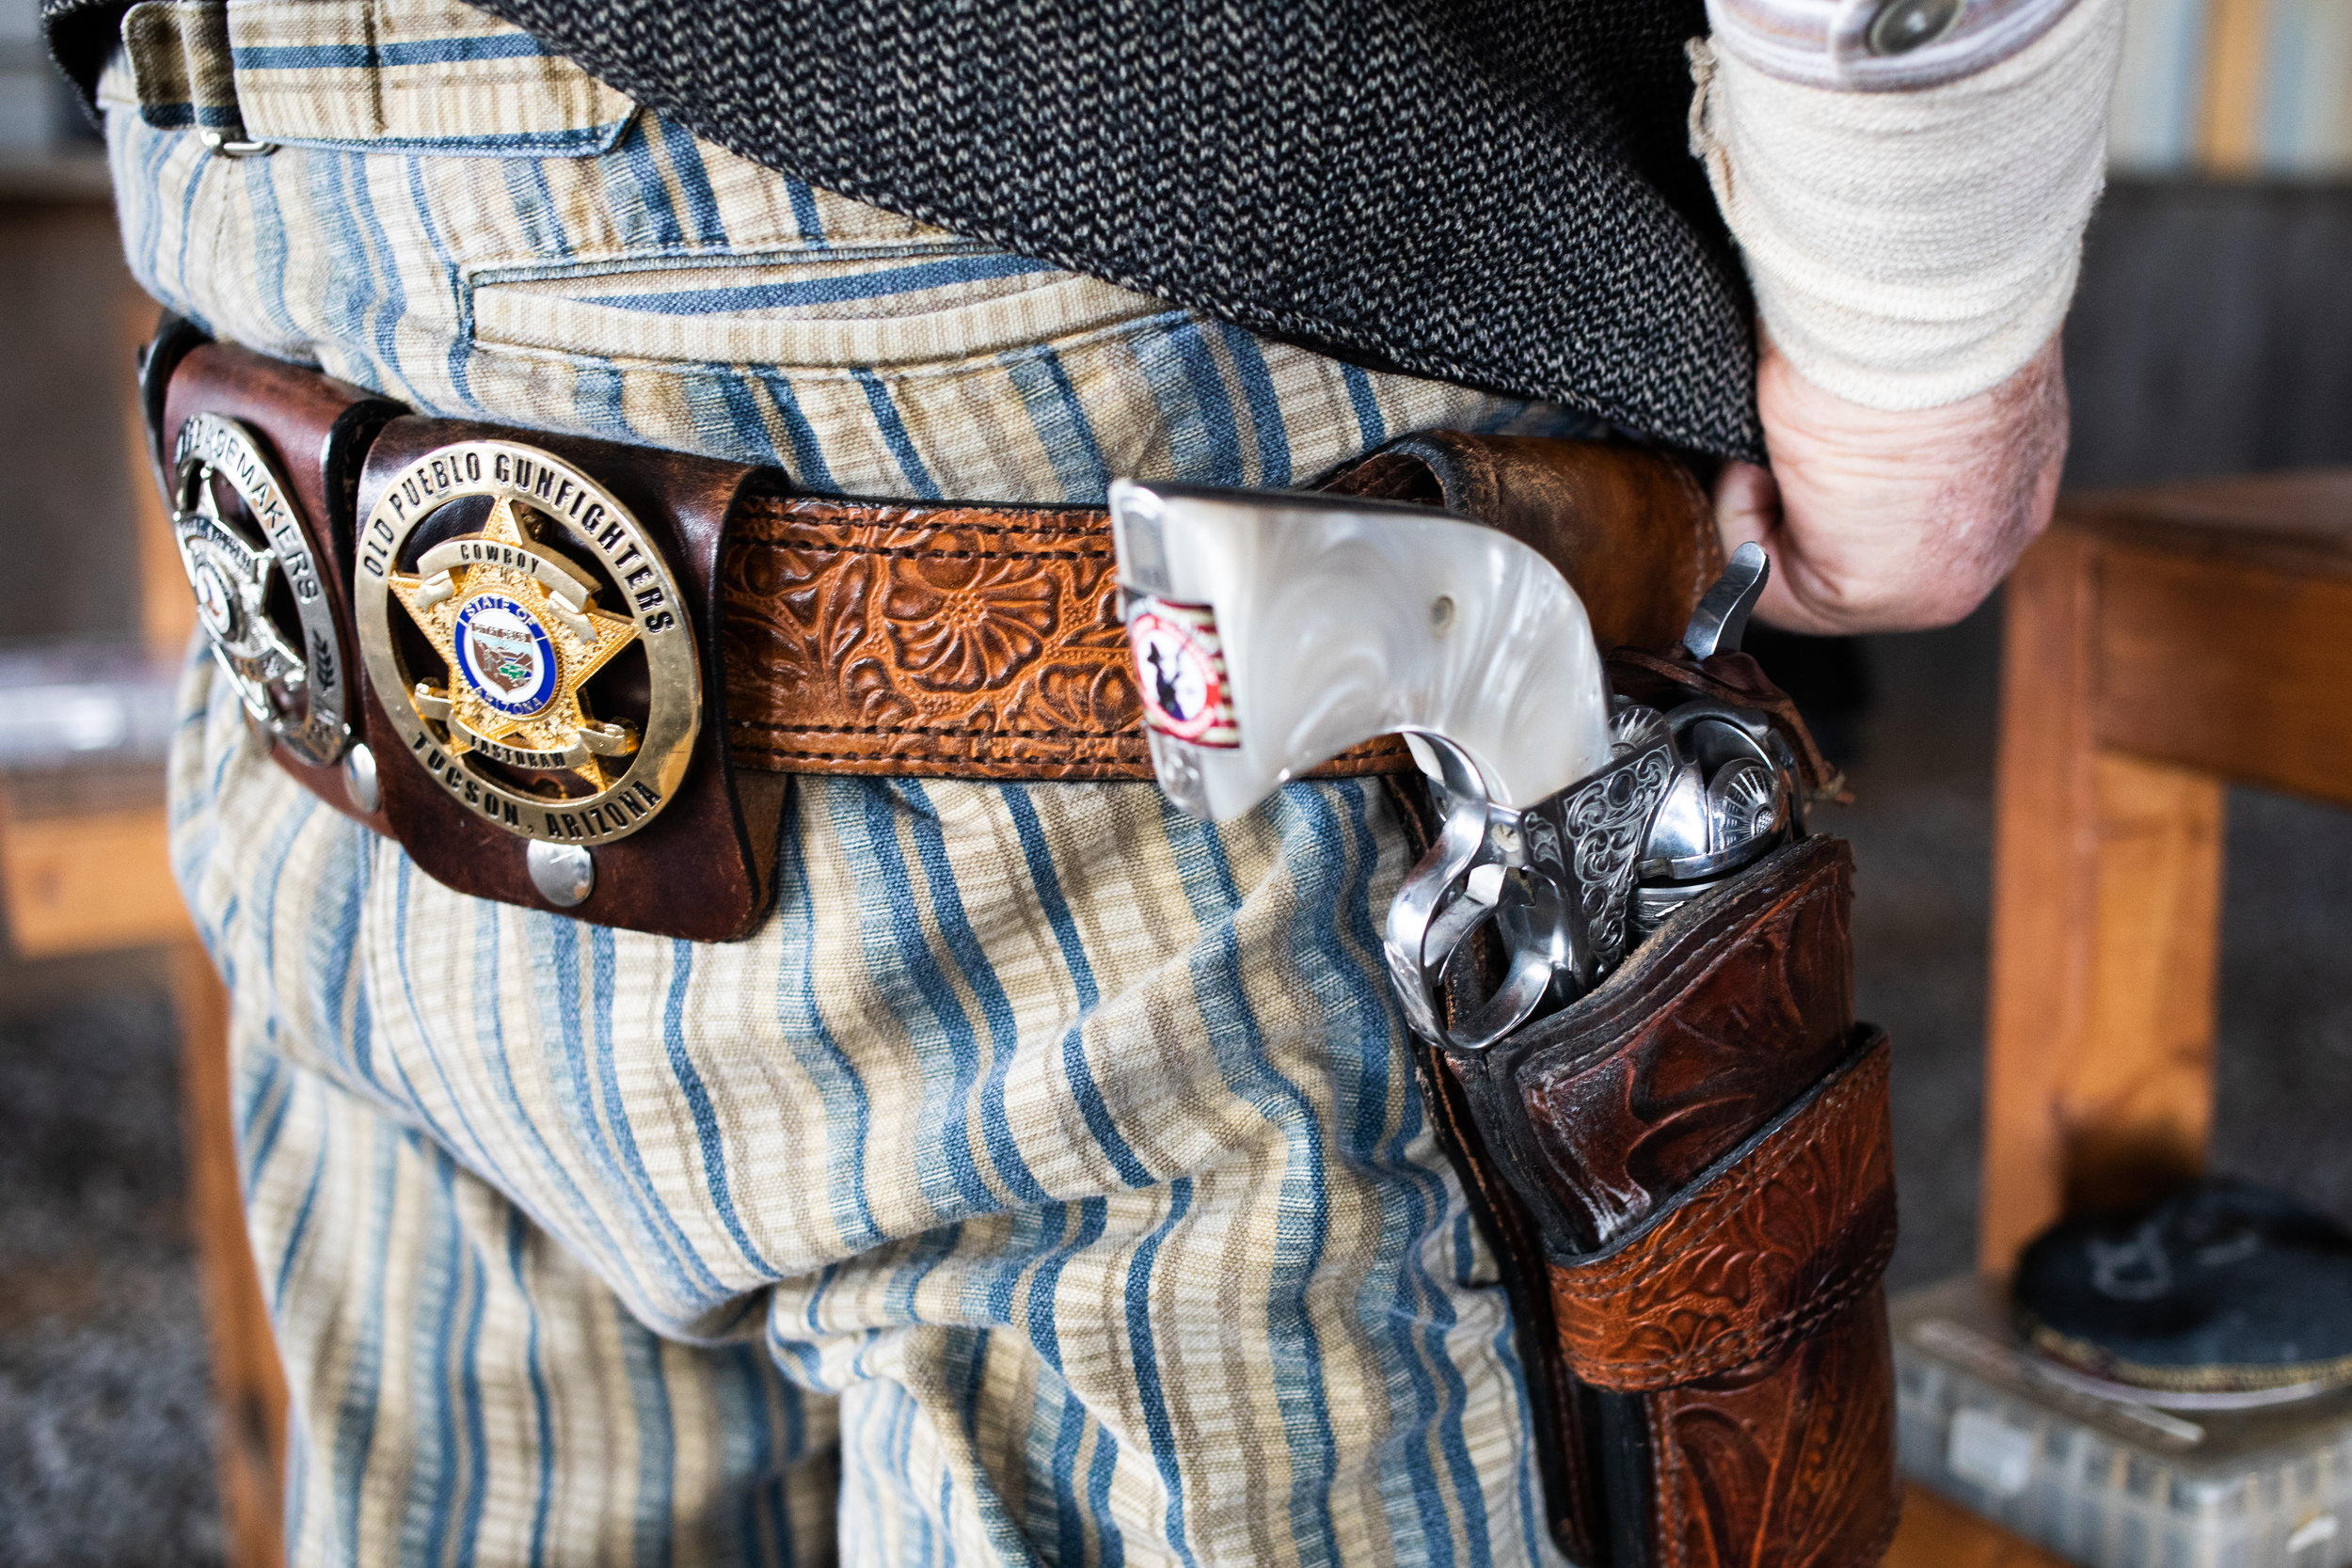 Details of a gun belt during the Grandview Gunslingers Cowboy Fastdraw Tournament in Bedford, VA. The Gunslingers are a Sanctioned Club for the Cowboy Fast Draw Association with headquarters in Fallon, Nevada.